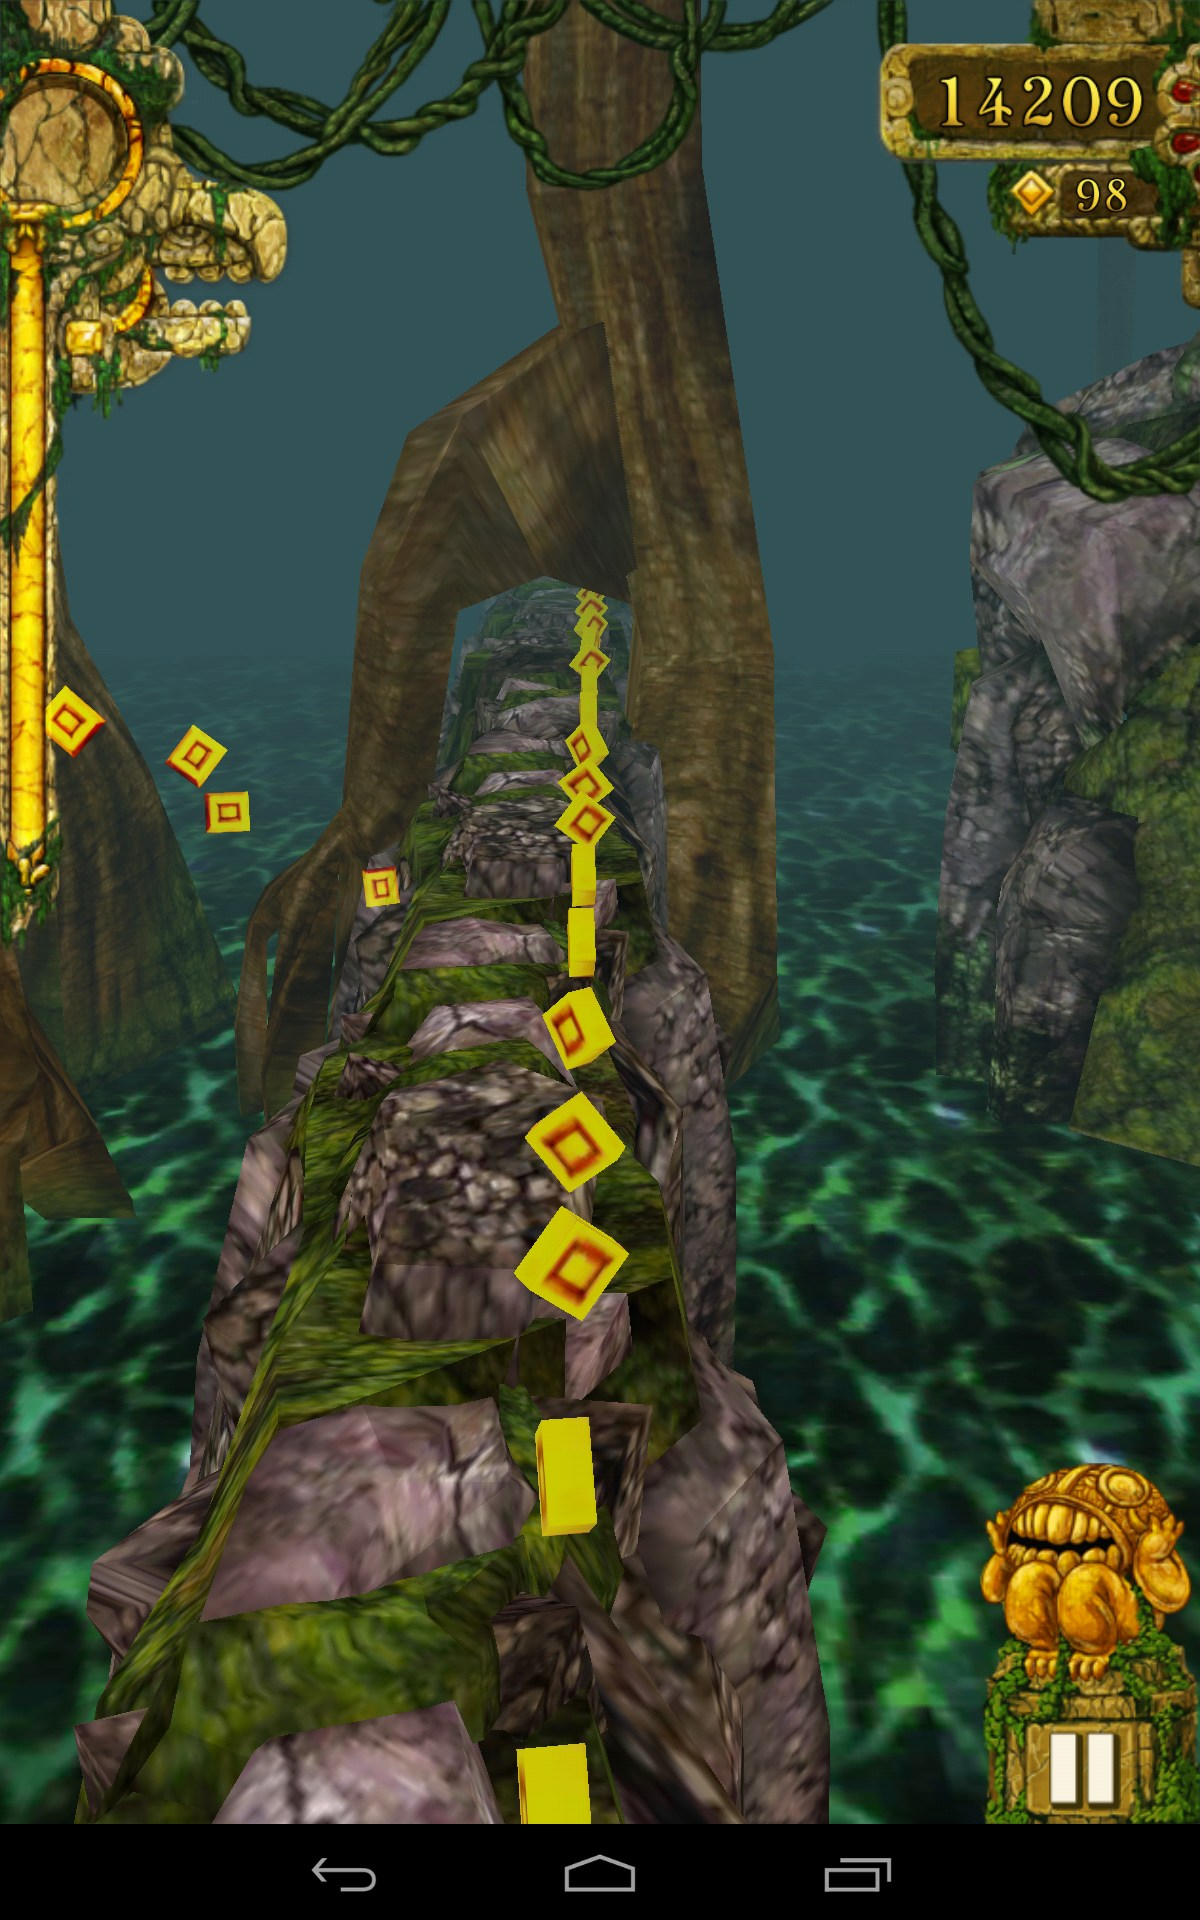 Phone Temple Run For Android Phones how to download games on an android phone images guru f dee phone